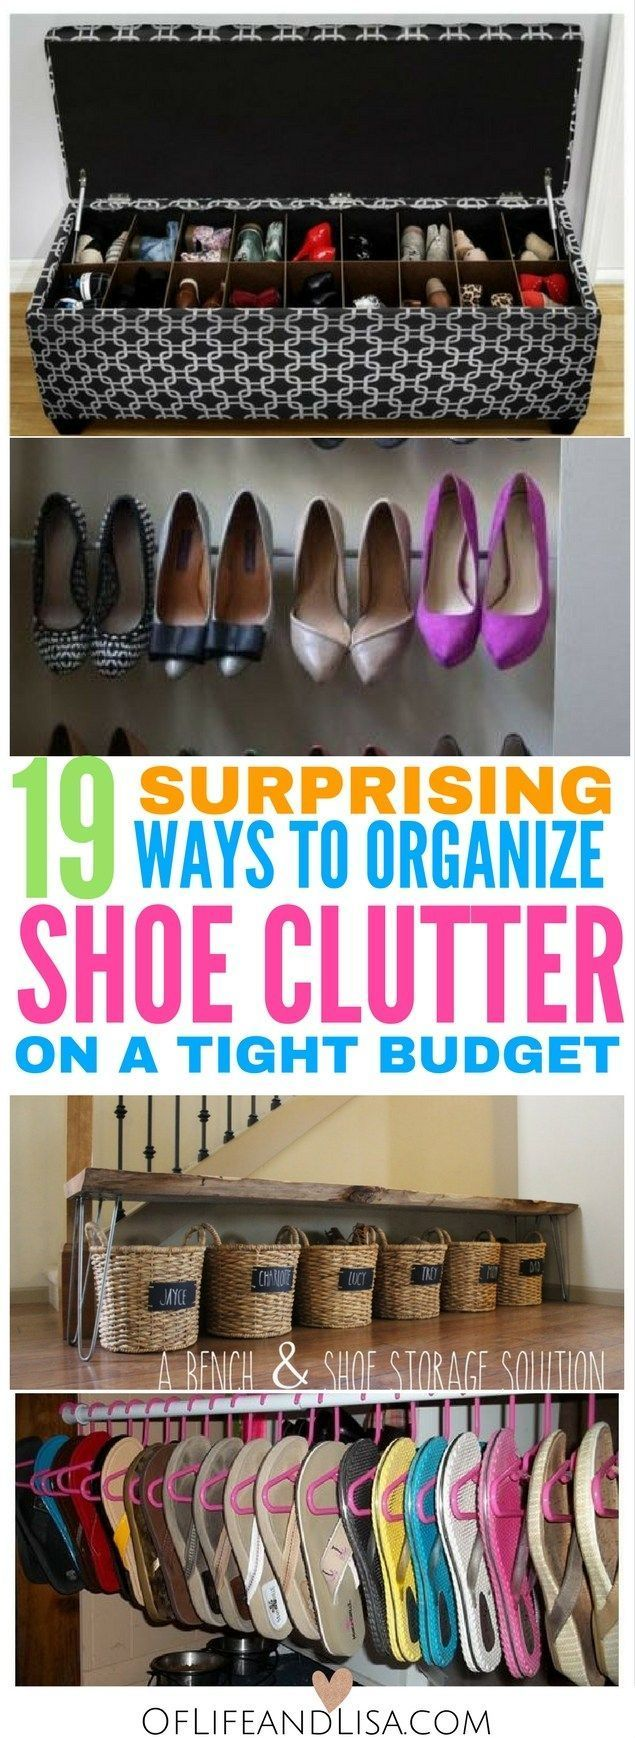 Get inspired to organize your shoes with these brilliant shoe storage ideas!